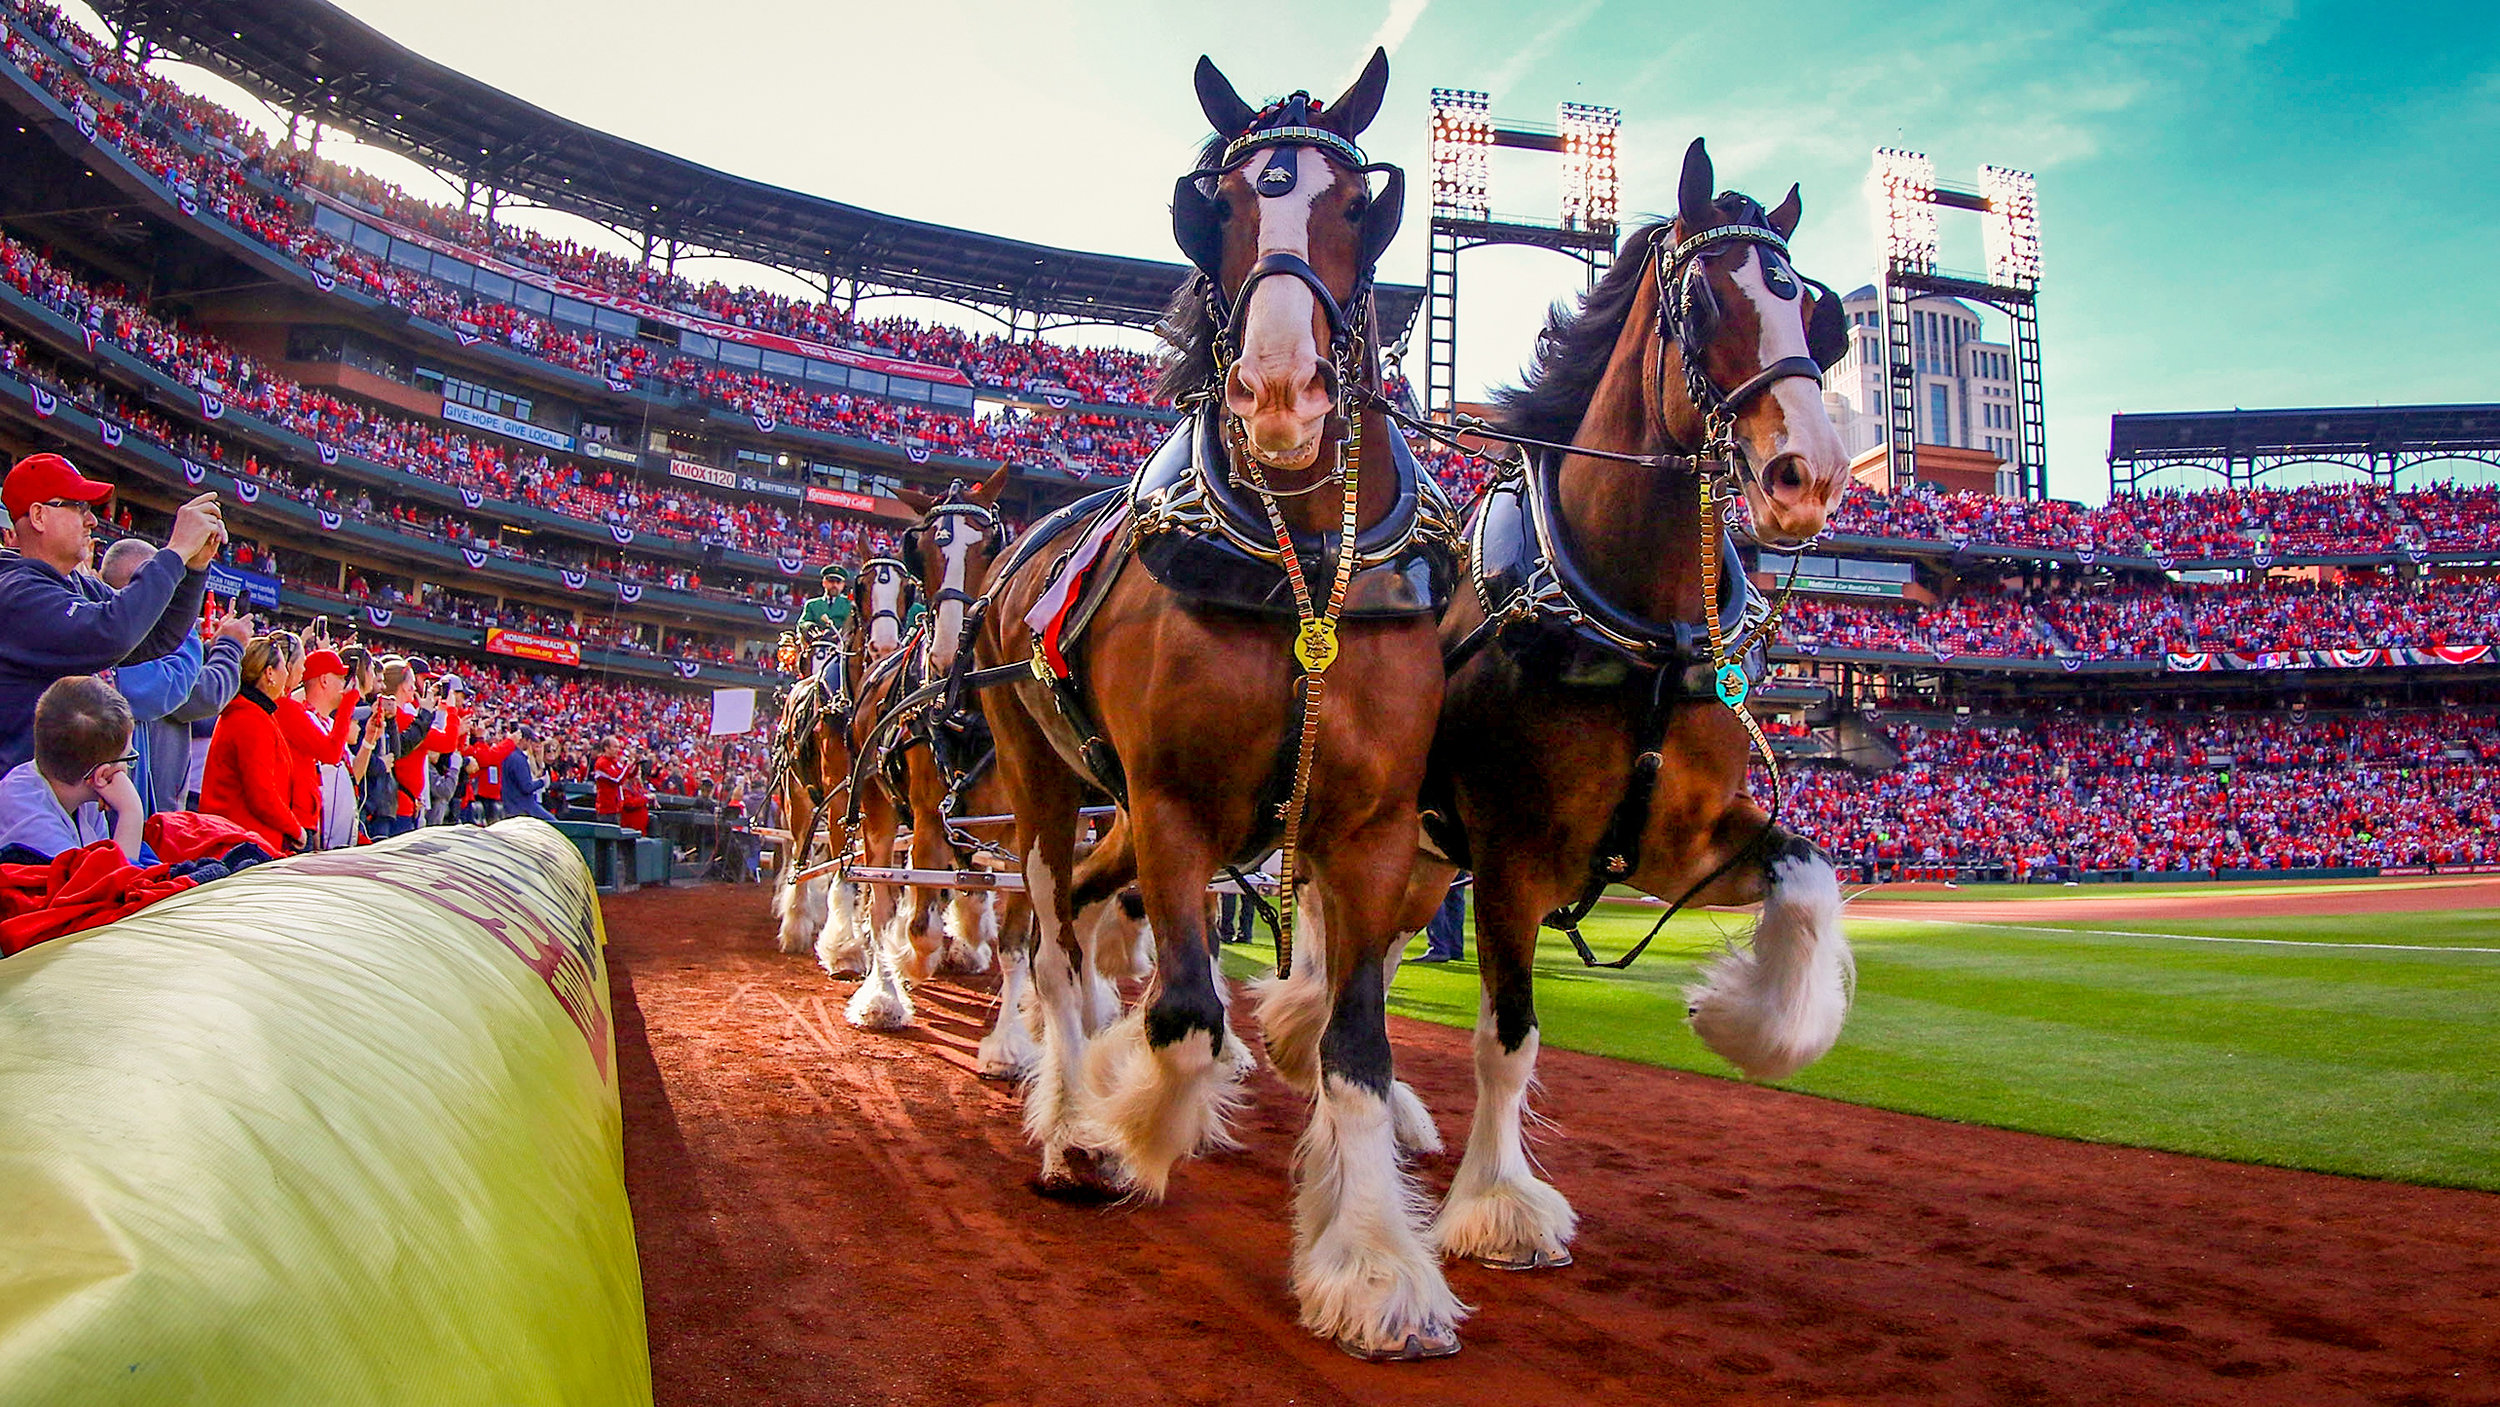 2018 Photo Review 20 - The Budweiser Clydesdales are a common sighting at Busch Stadium! Dilip VishwanatGetty Images.jpg